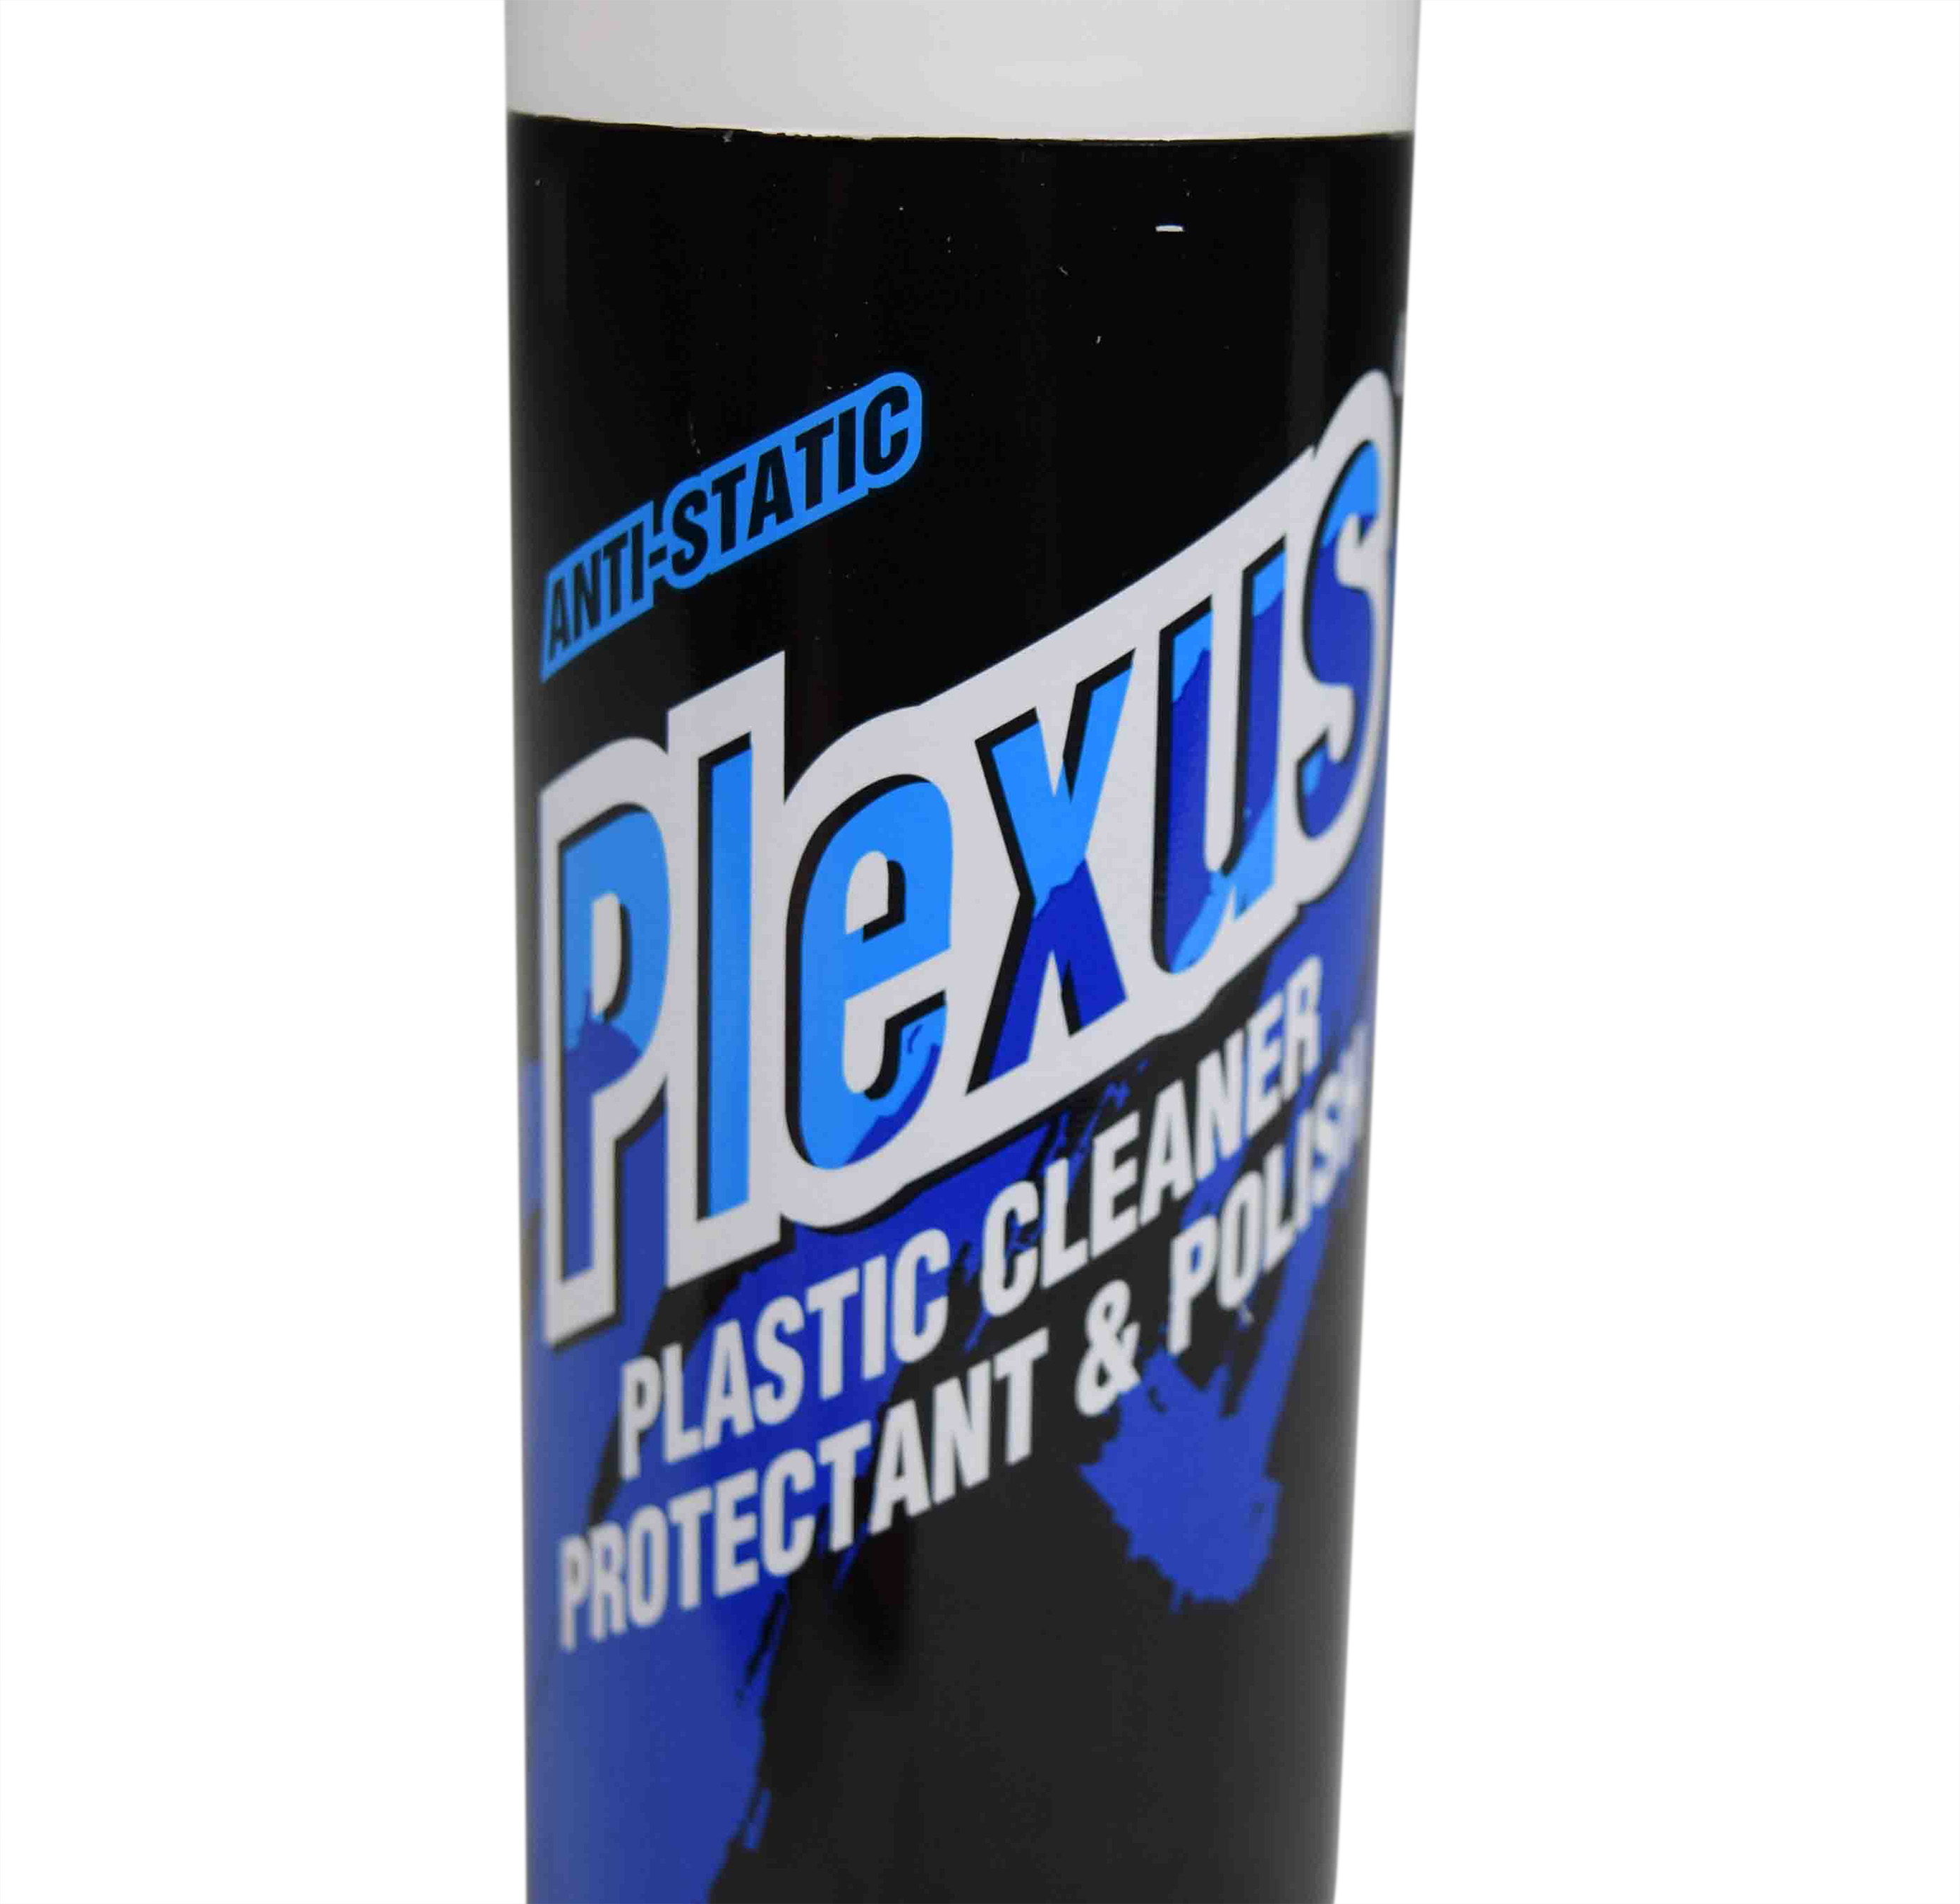 Plexus-Plastic-Cleaner-Protectant-Polish-7oz-Can-4-Pack-MADE-In-the-USA-image-3